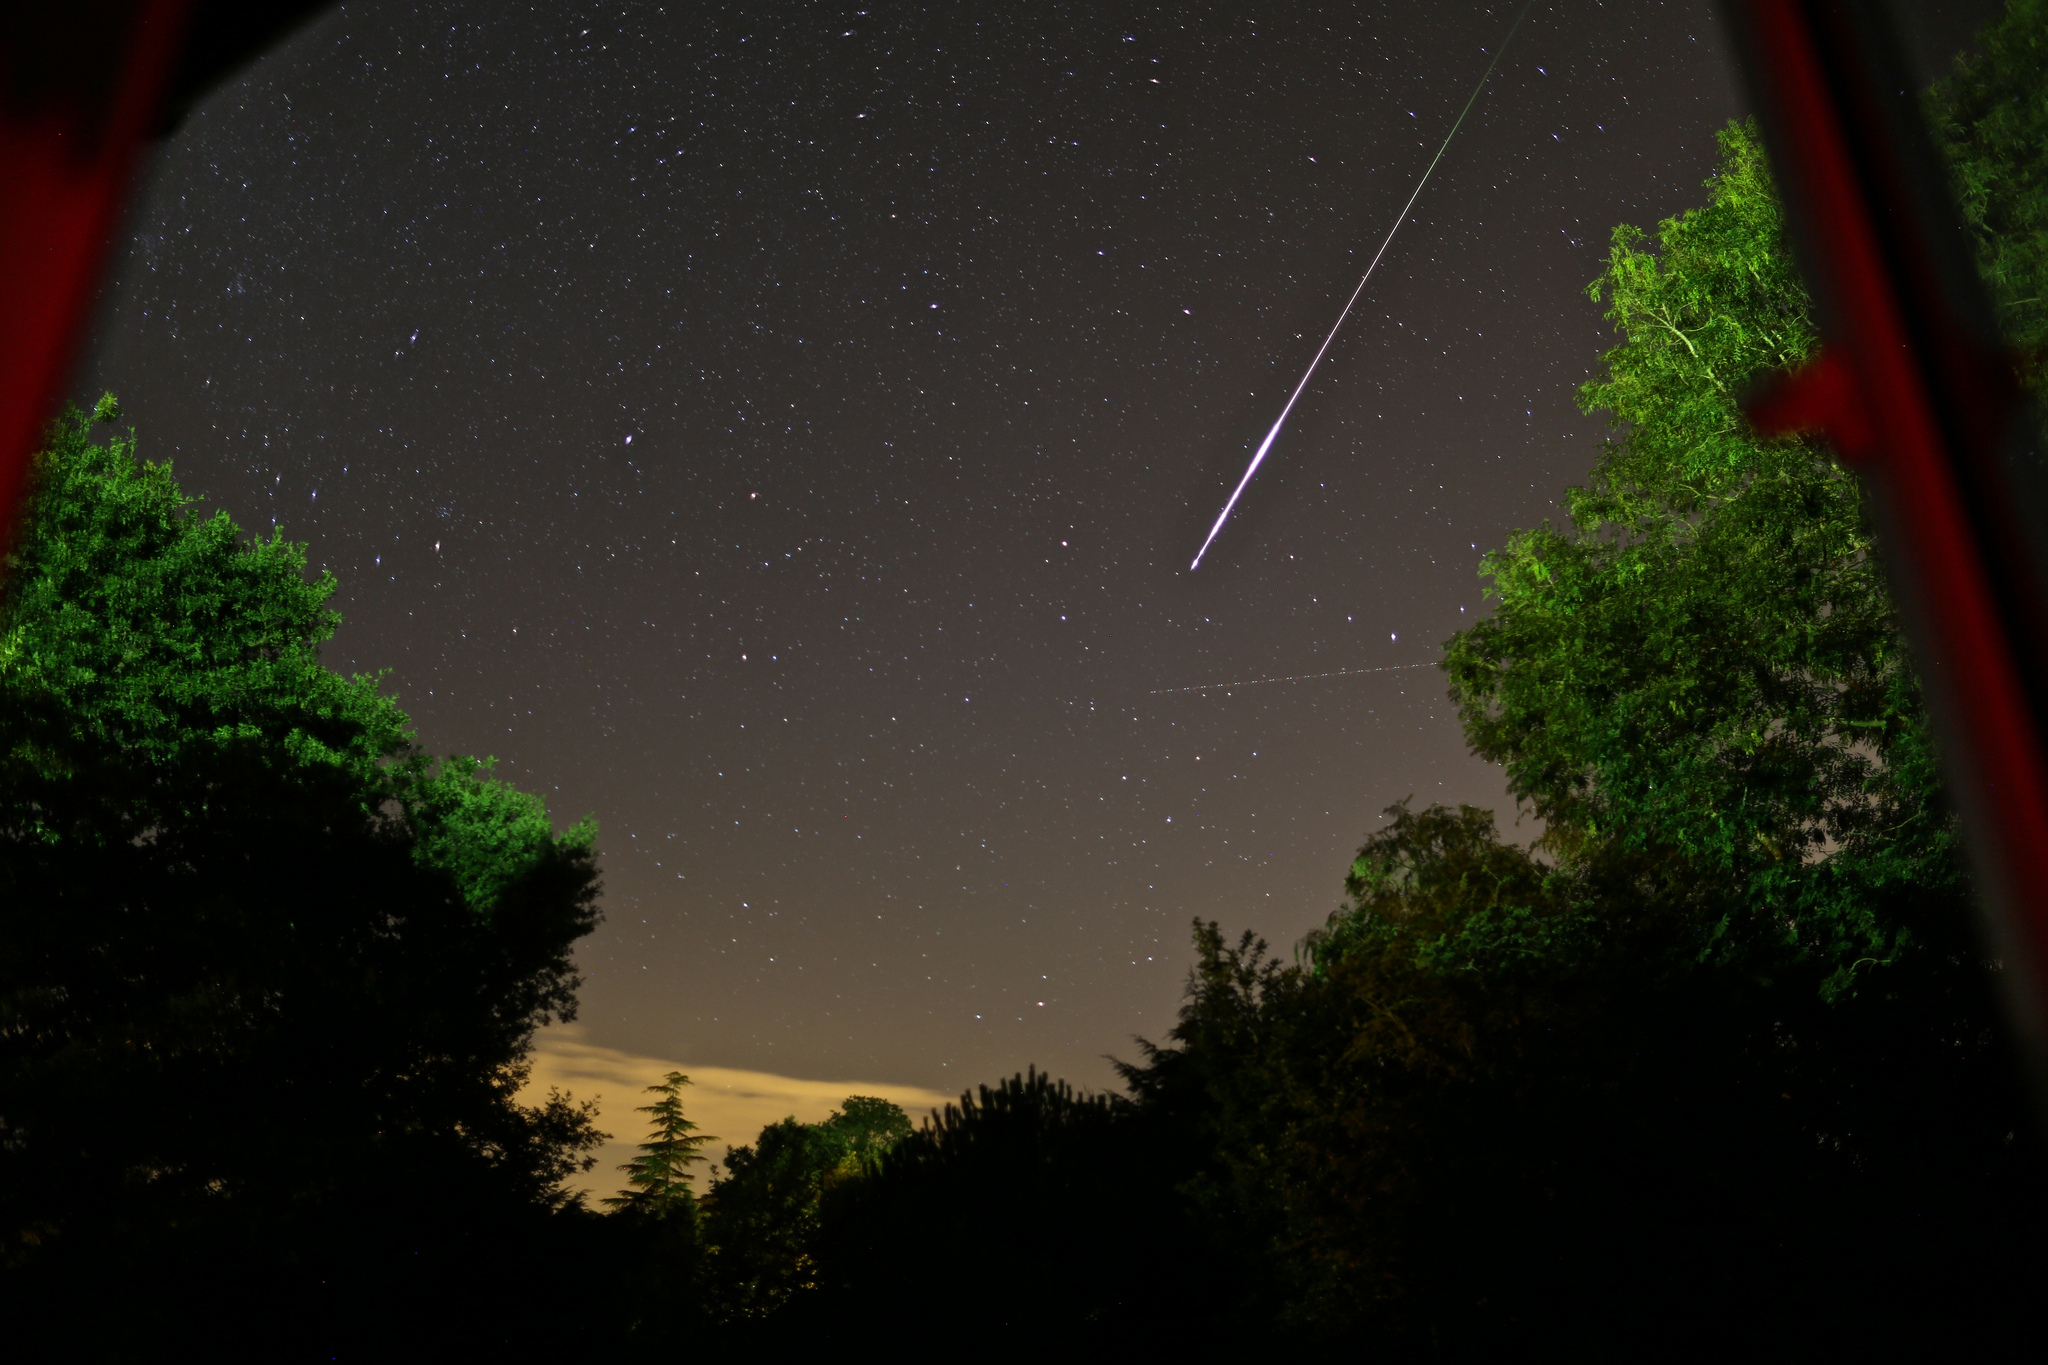 Perseid Meteor, courtesy of Kathryn Alberts